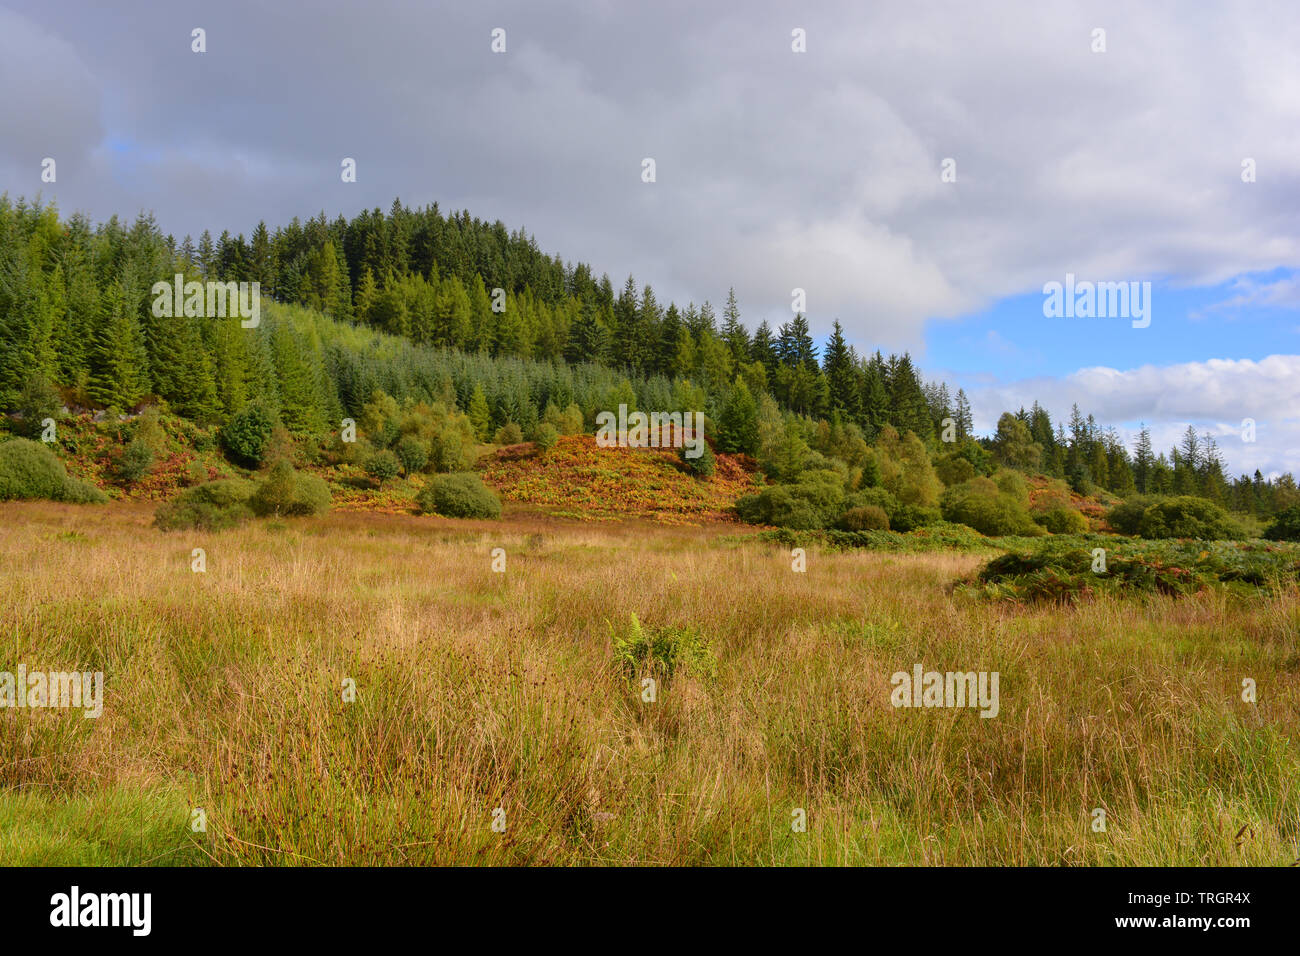 Autumn landscape at Duke's Pass, between Aberfoyle and Loch Katrine in The Trossachs, Scotland - Stock Image